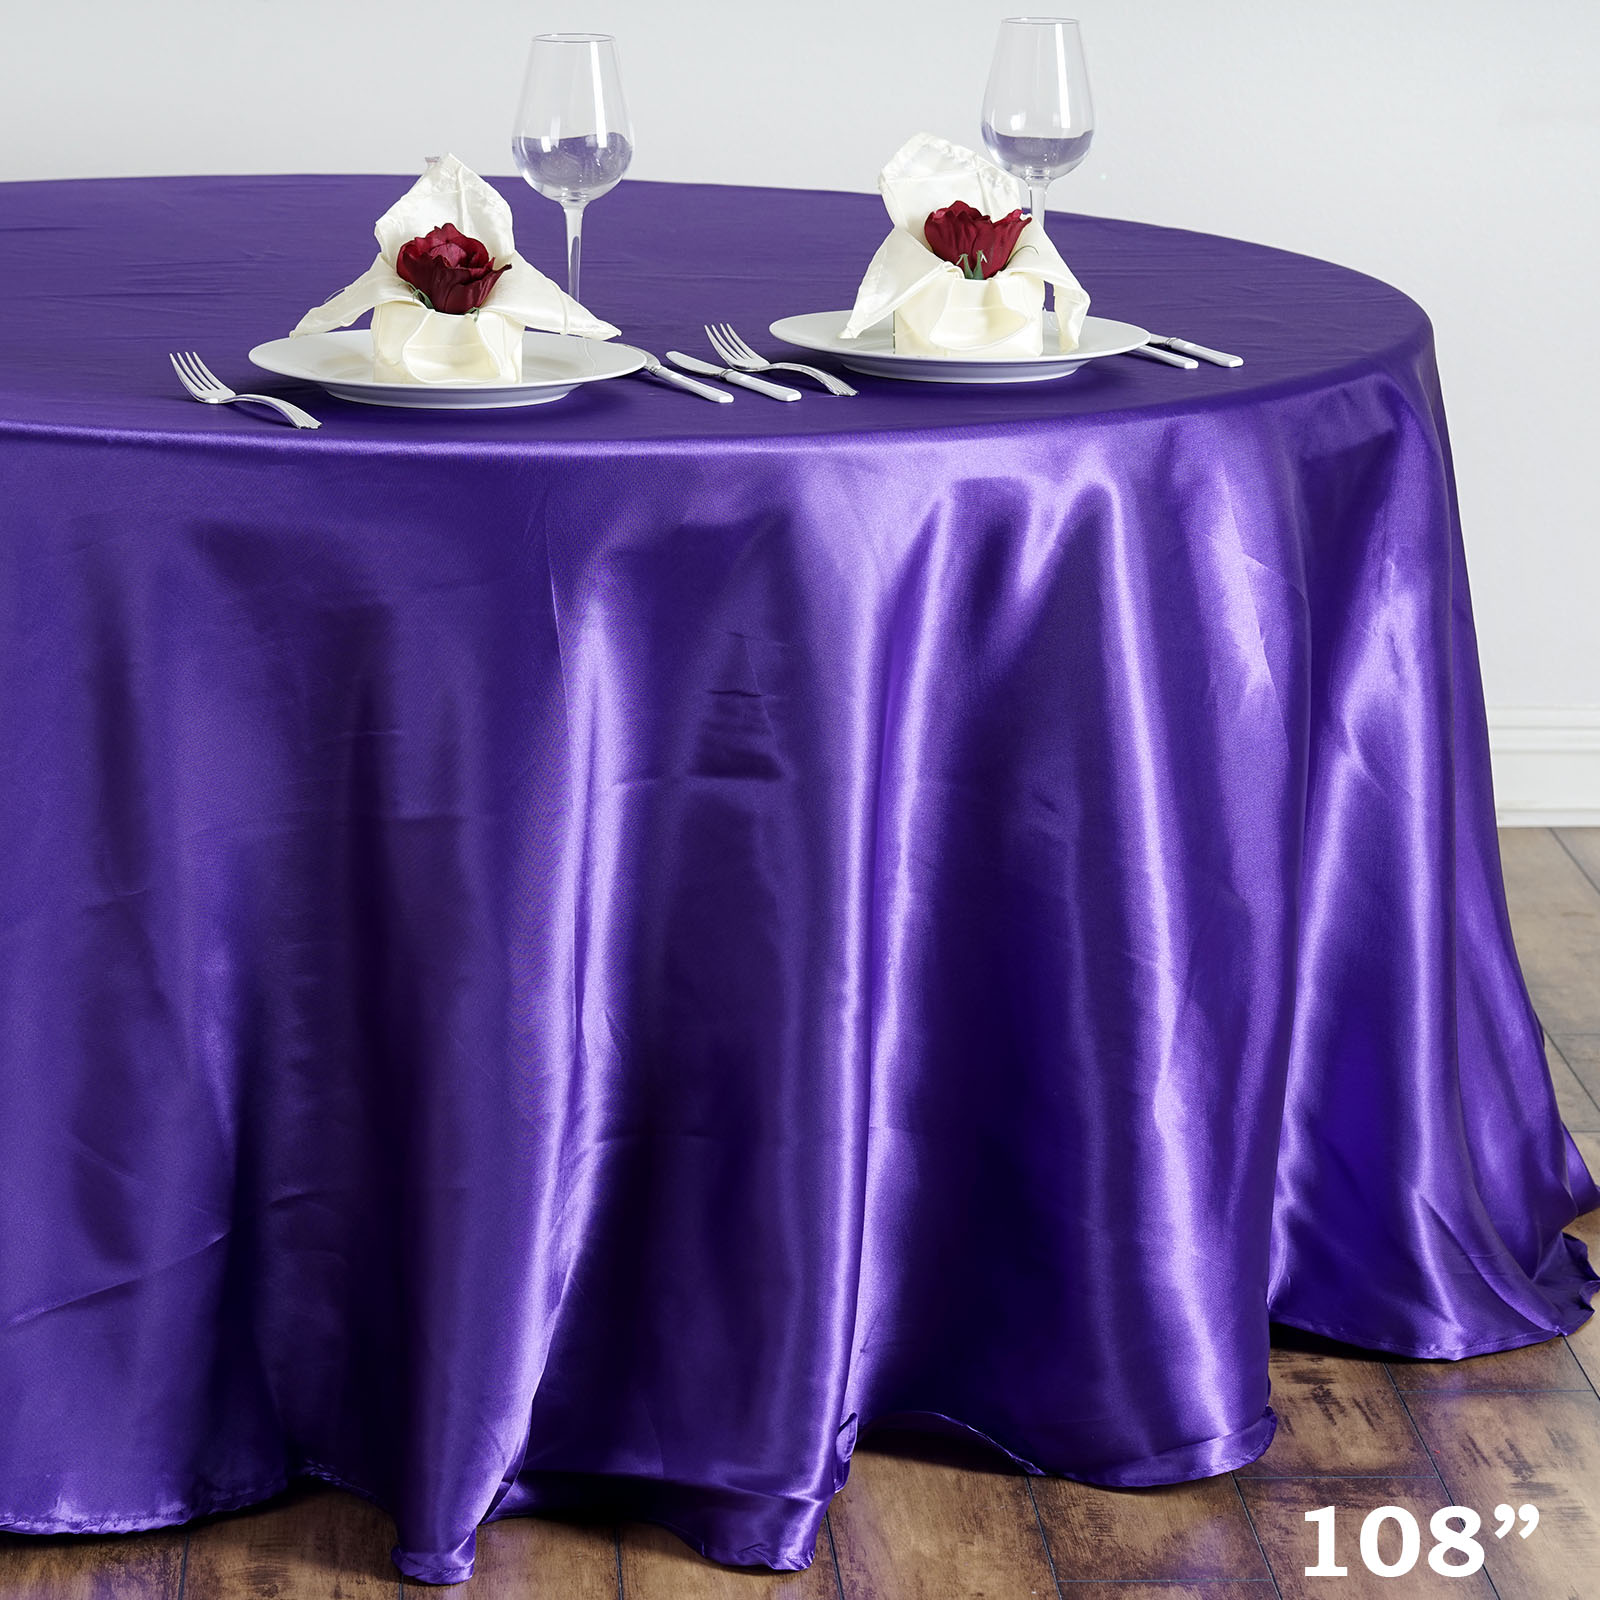 """Efavormart 108"""" Round Satin Tablecloth for Kitchen Dining Catering Wedding Birthday Party Decorations Events"""